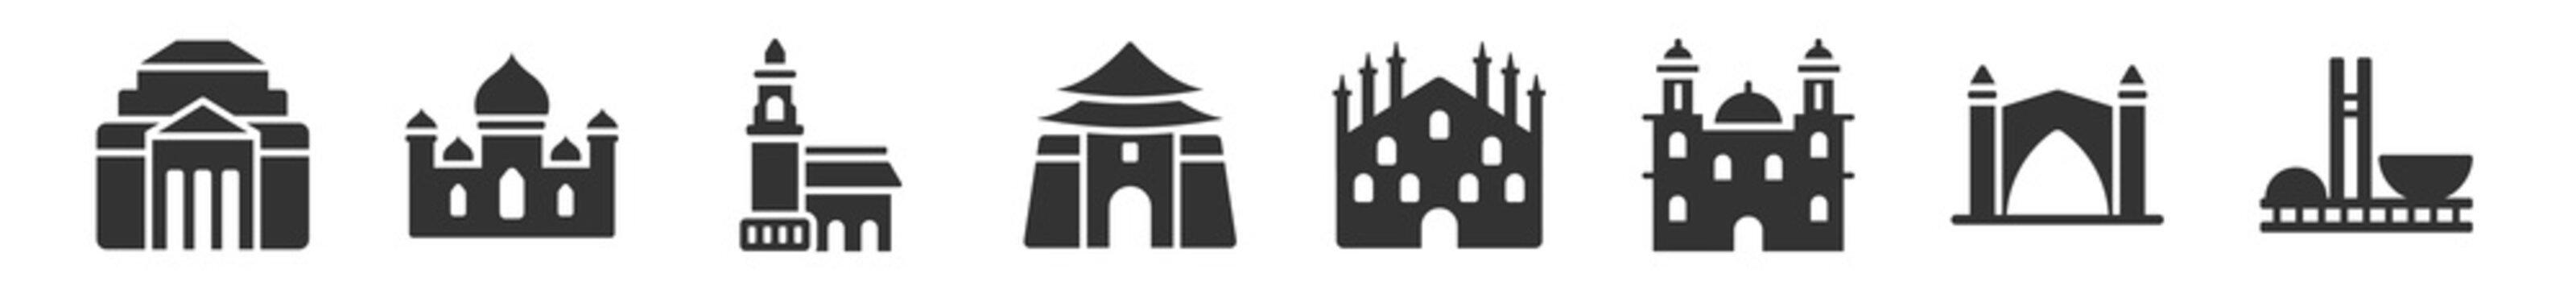 filled set of monuments icons. glyph vector icons such as shrine of remembrance, badshahi mosque, tower of nevyansk in russia, chiang kai shek memorial hall, milan cathedral, national congress